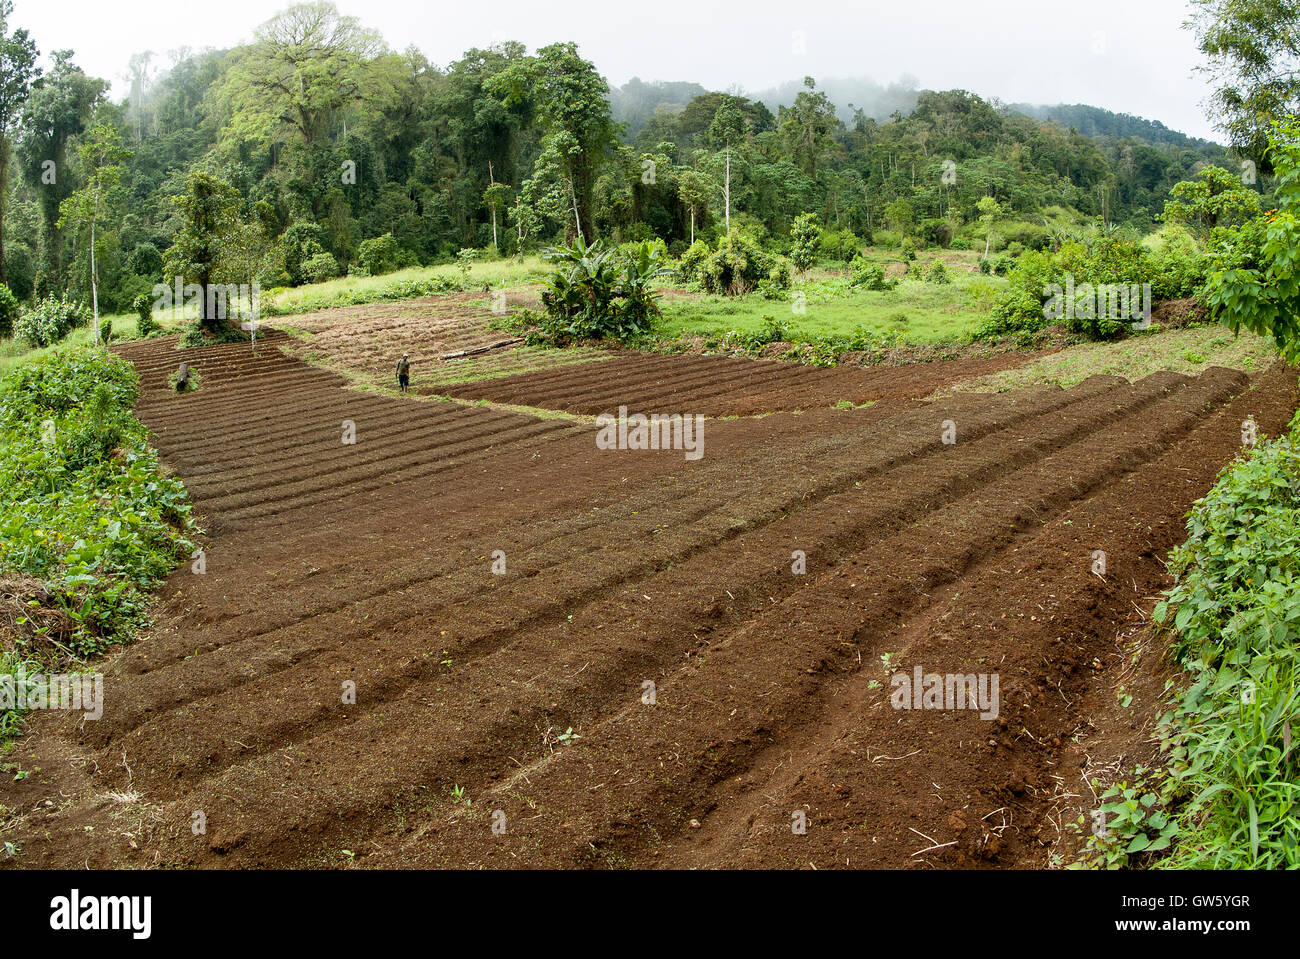 Rain Forest cut off to give room for horticultural explorations. São Tomé e Príncipe - Stock Image